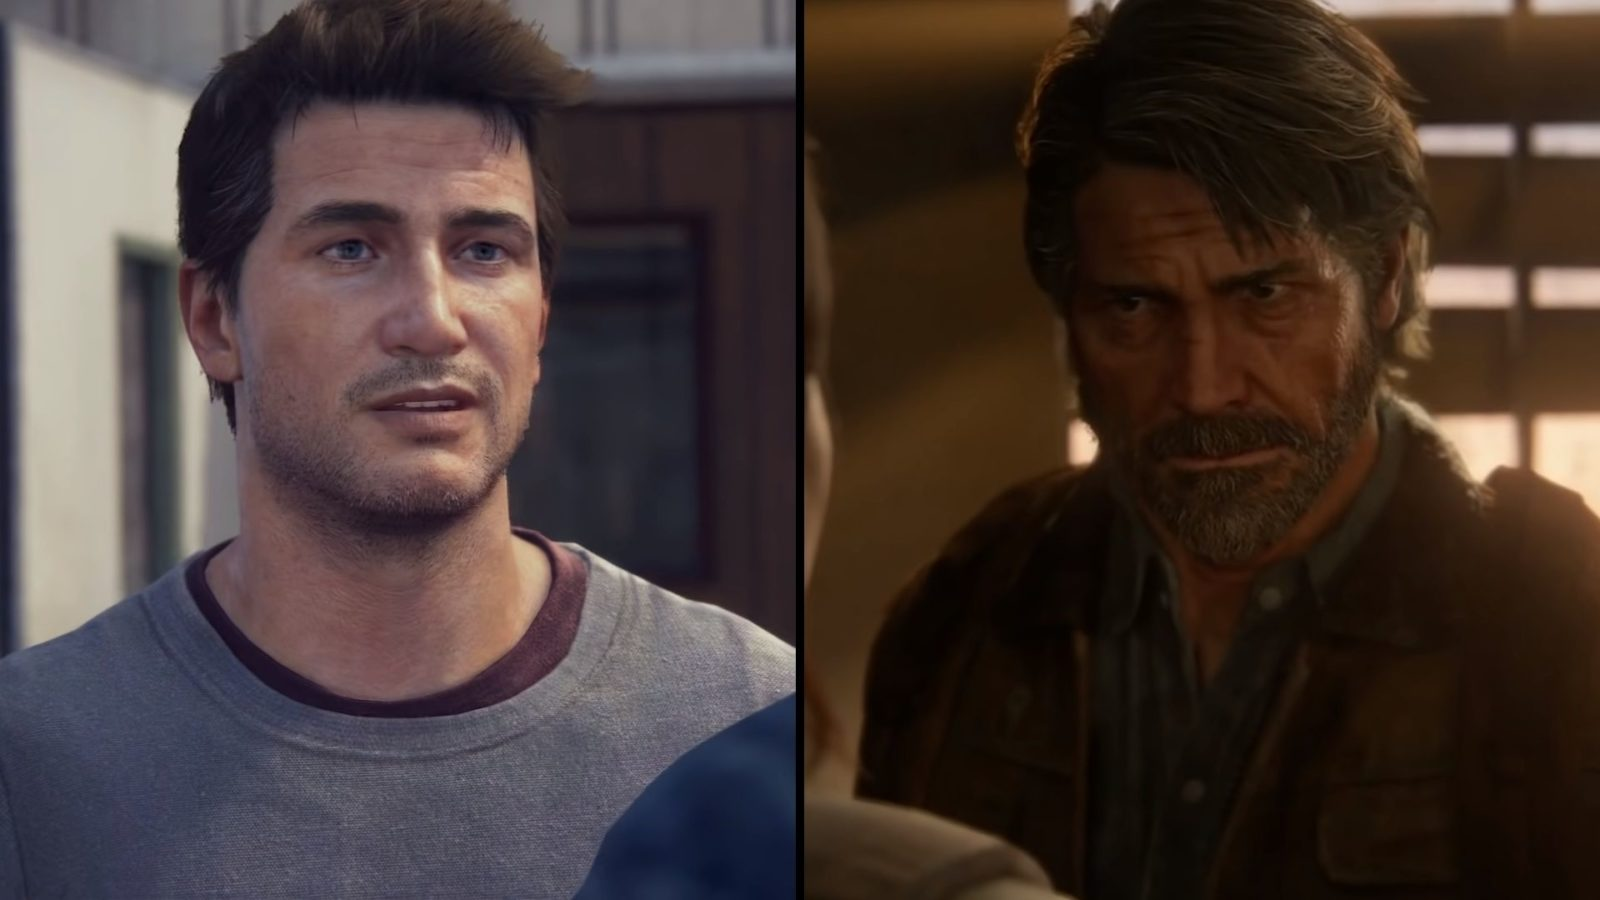 nathan drake and joel miller from uncharted and TLOU